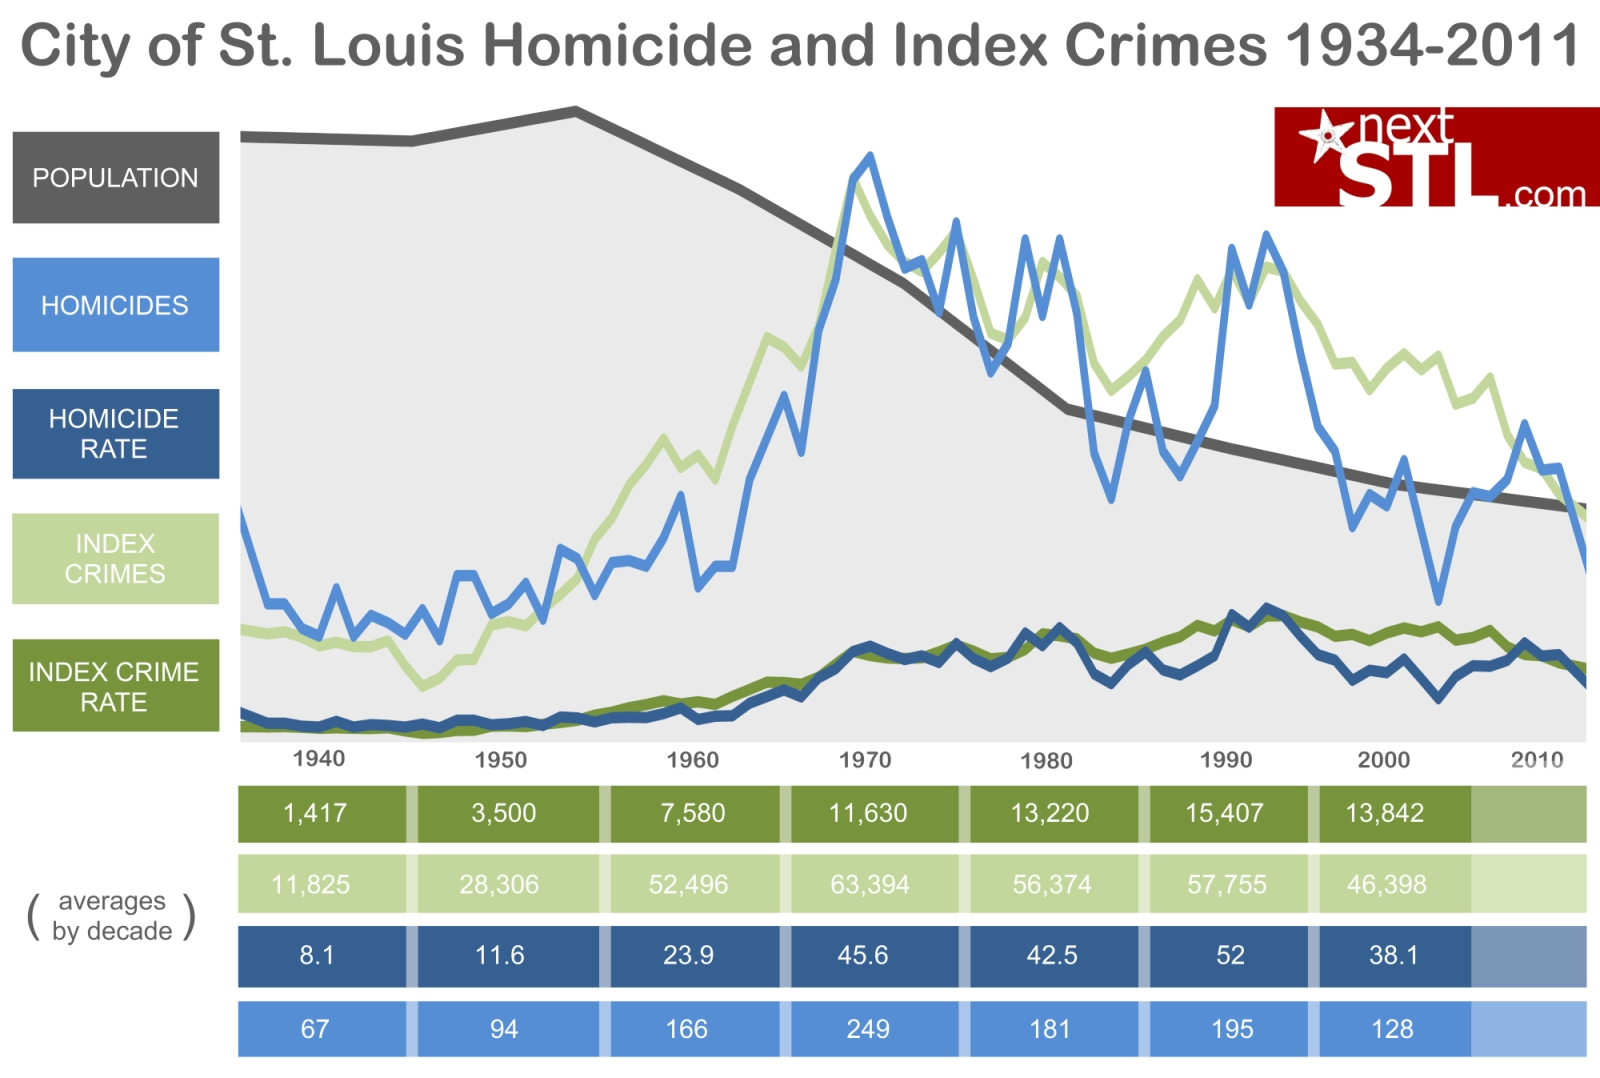 Understanding St. Louis: Homicide and Index Crime Totals and Rates 1943-2012